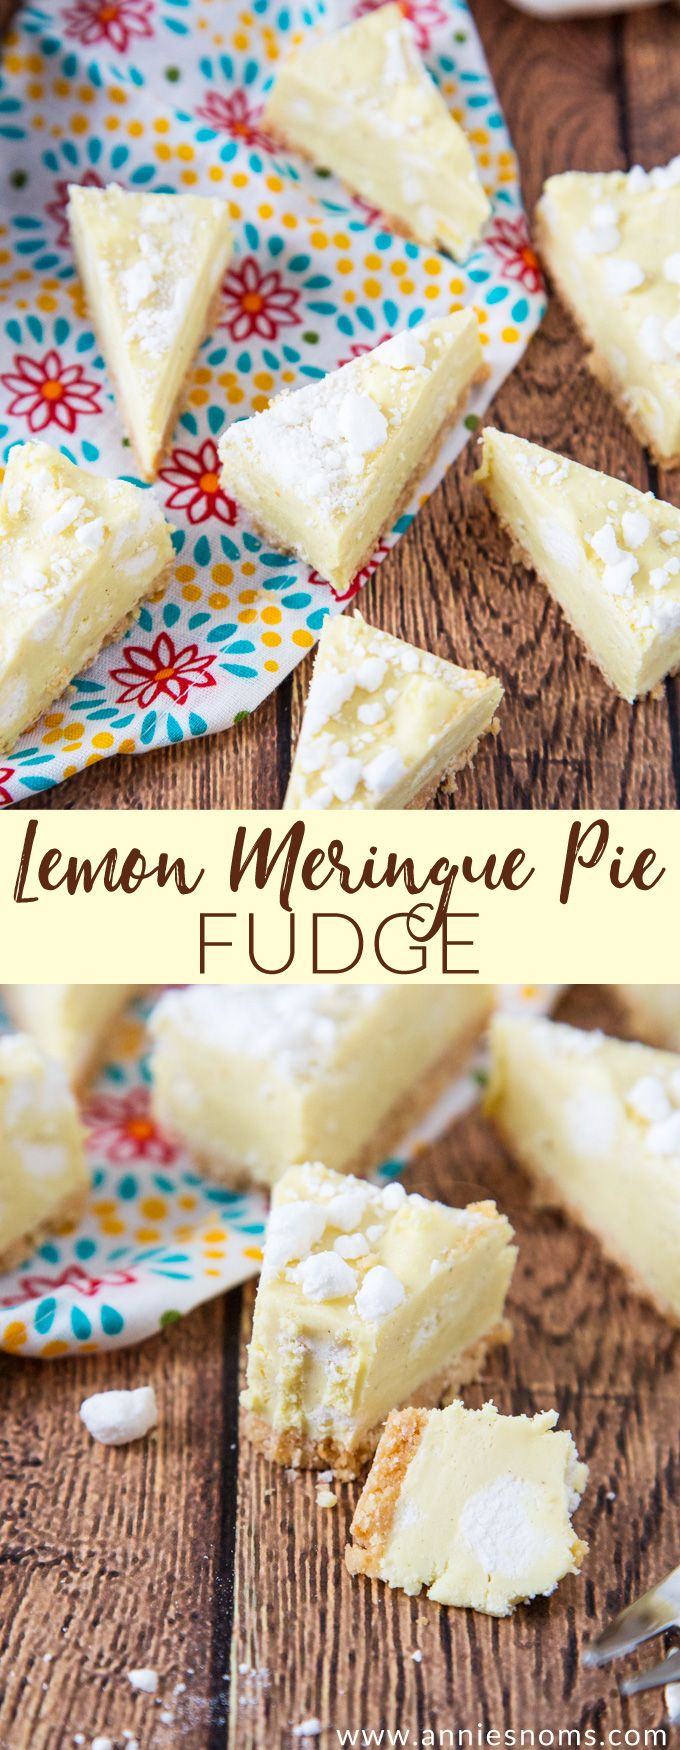 This Lemon Meringue Pie Fudge is ridiculously tasty and packed with lemon flavour and meringue pieces atop a shortbread base.